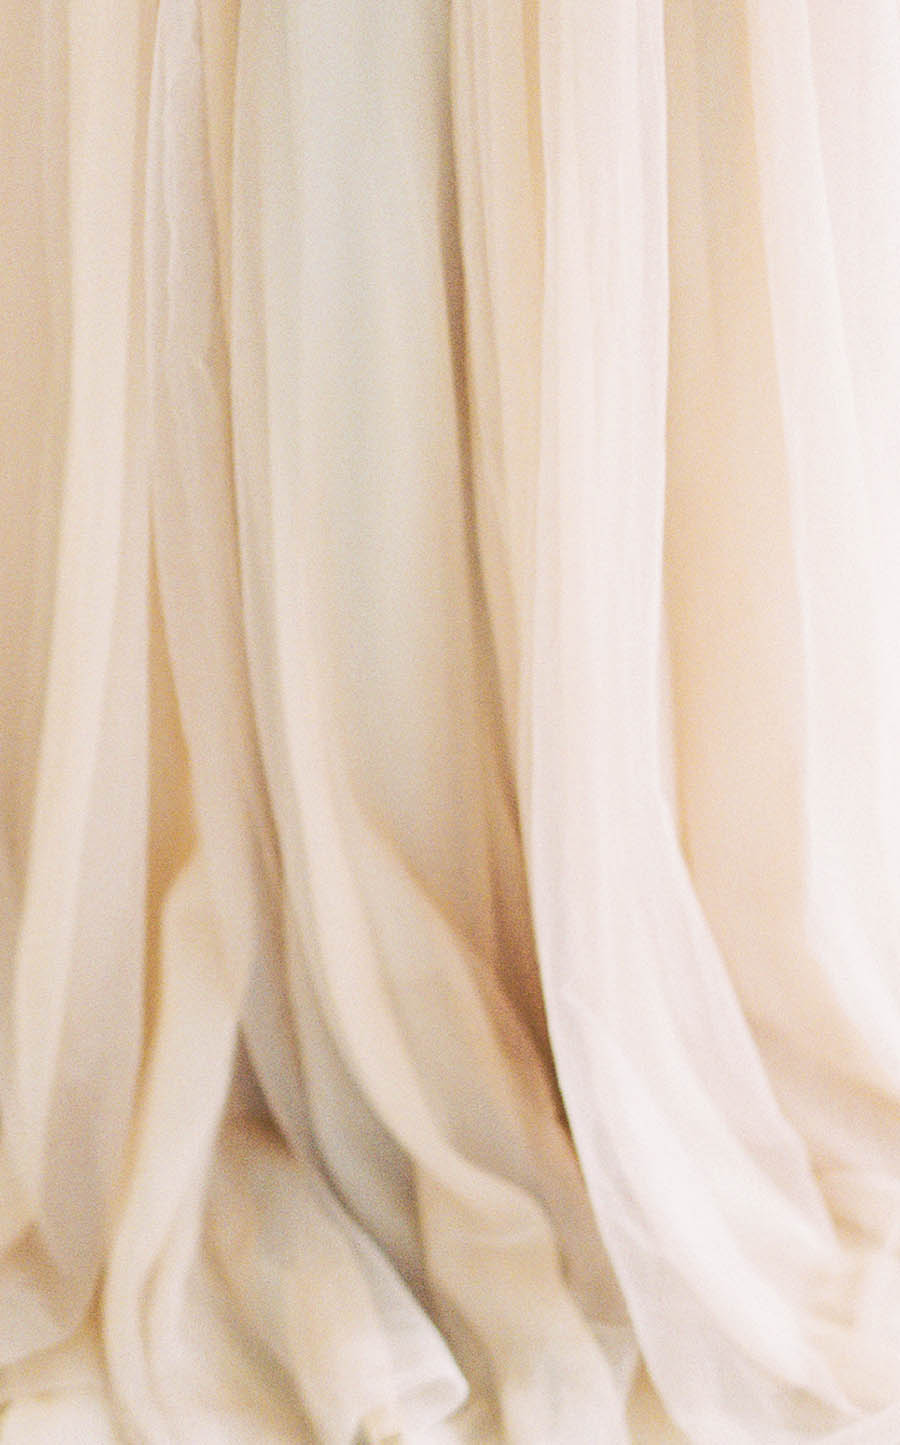 OTOGRAPHY_SHOP GOSSAMER_BUTTERFLY_LOS ANGELES WEDDING INSPIRATION-233.jpg